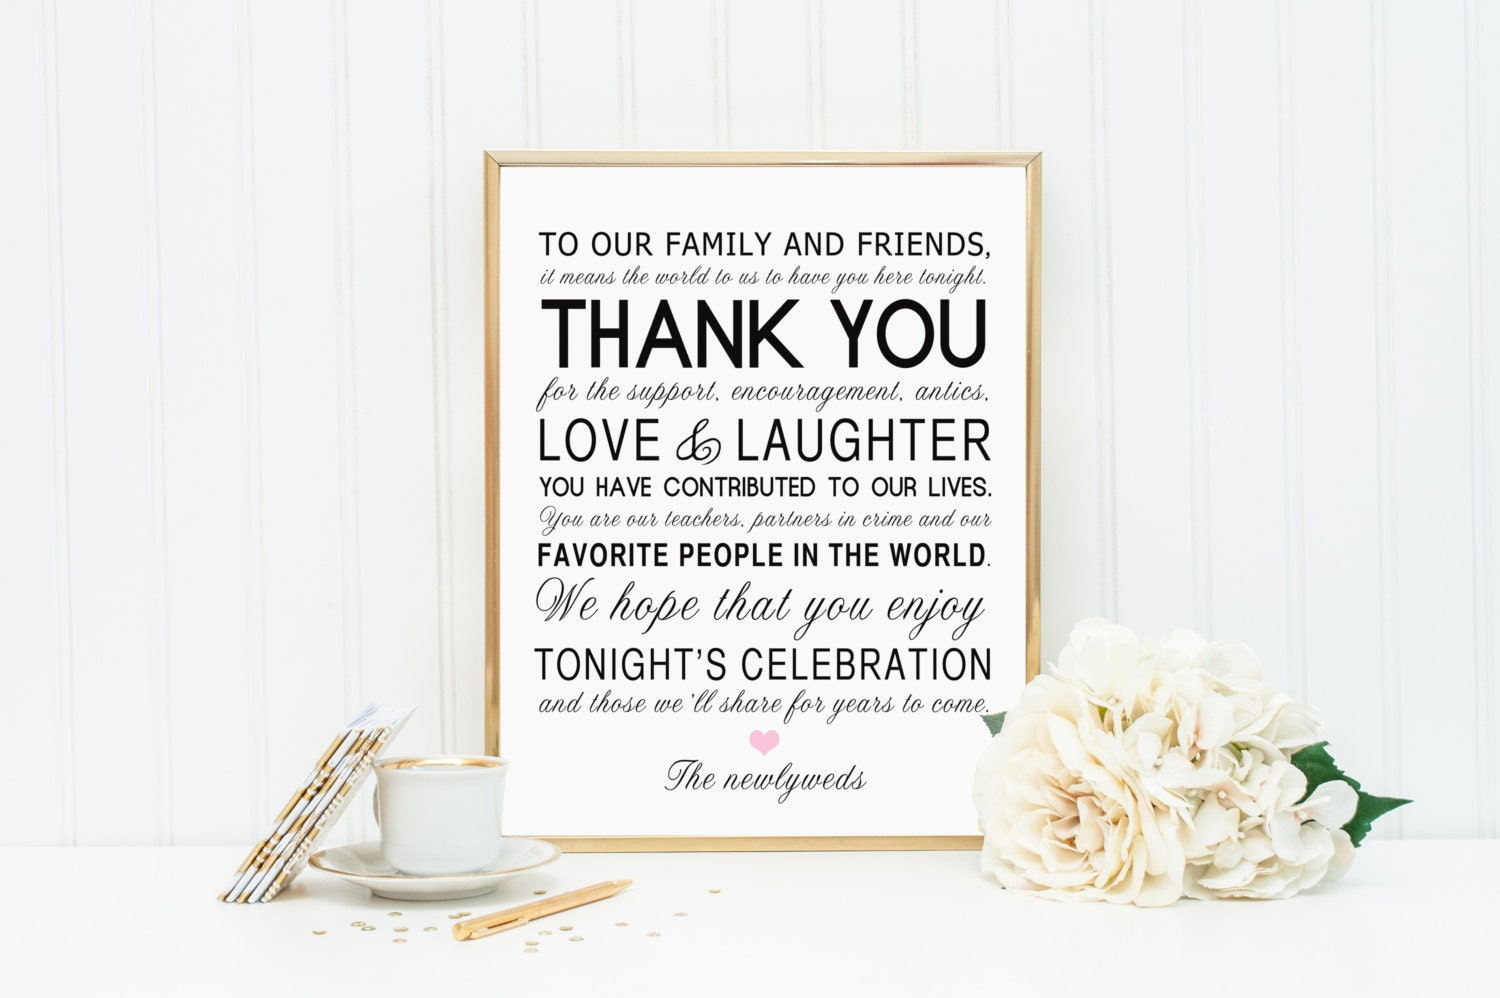 8 X 10 PRINTED Thank You Wedding Reception Sign For Family And